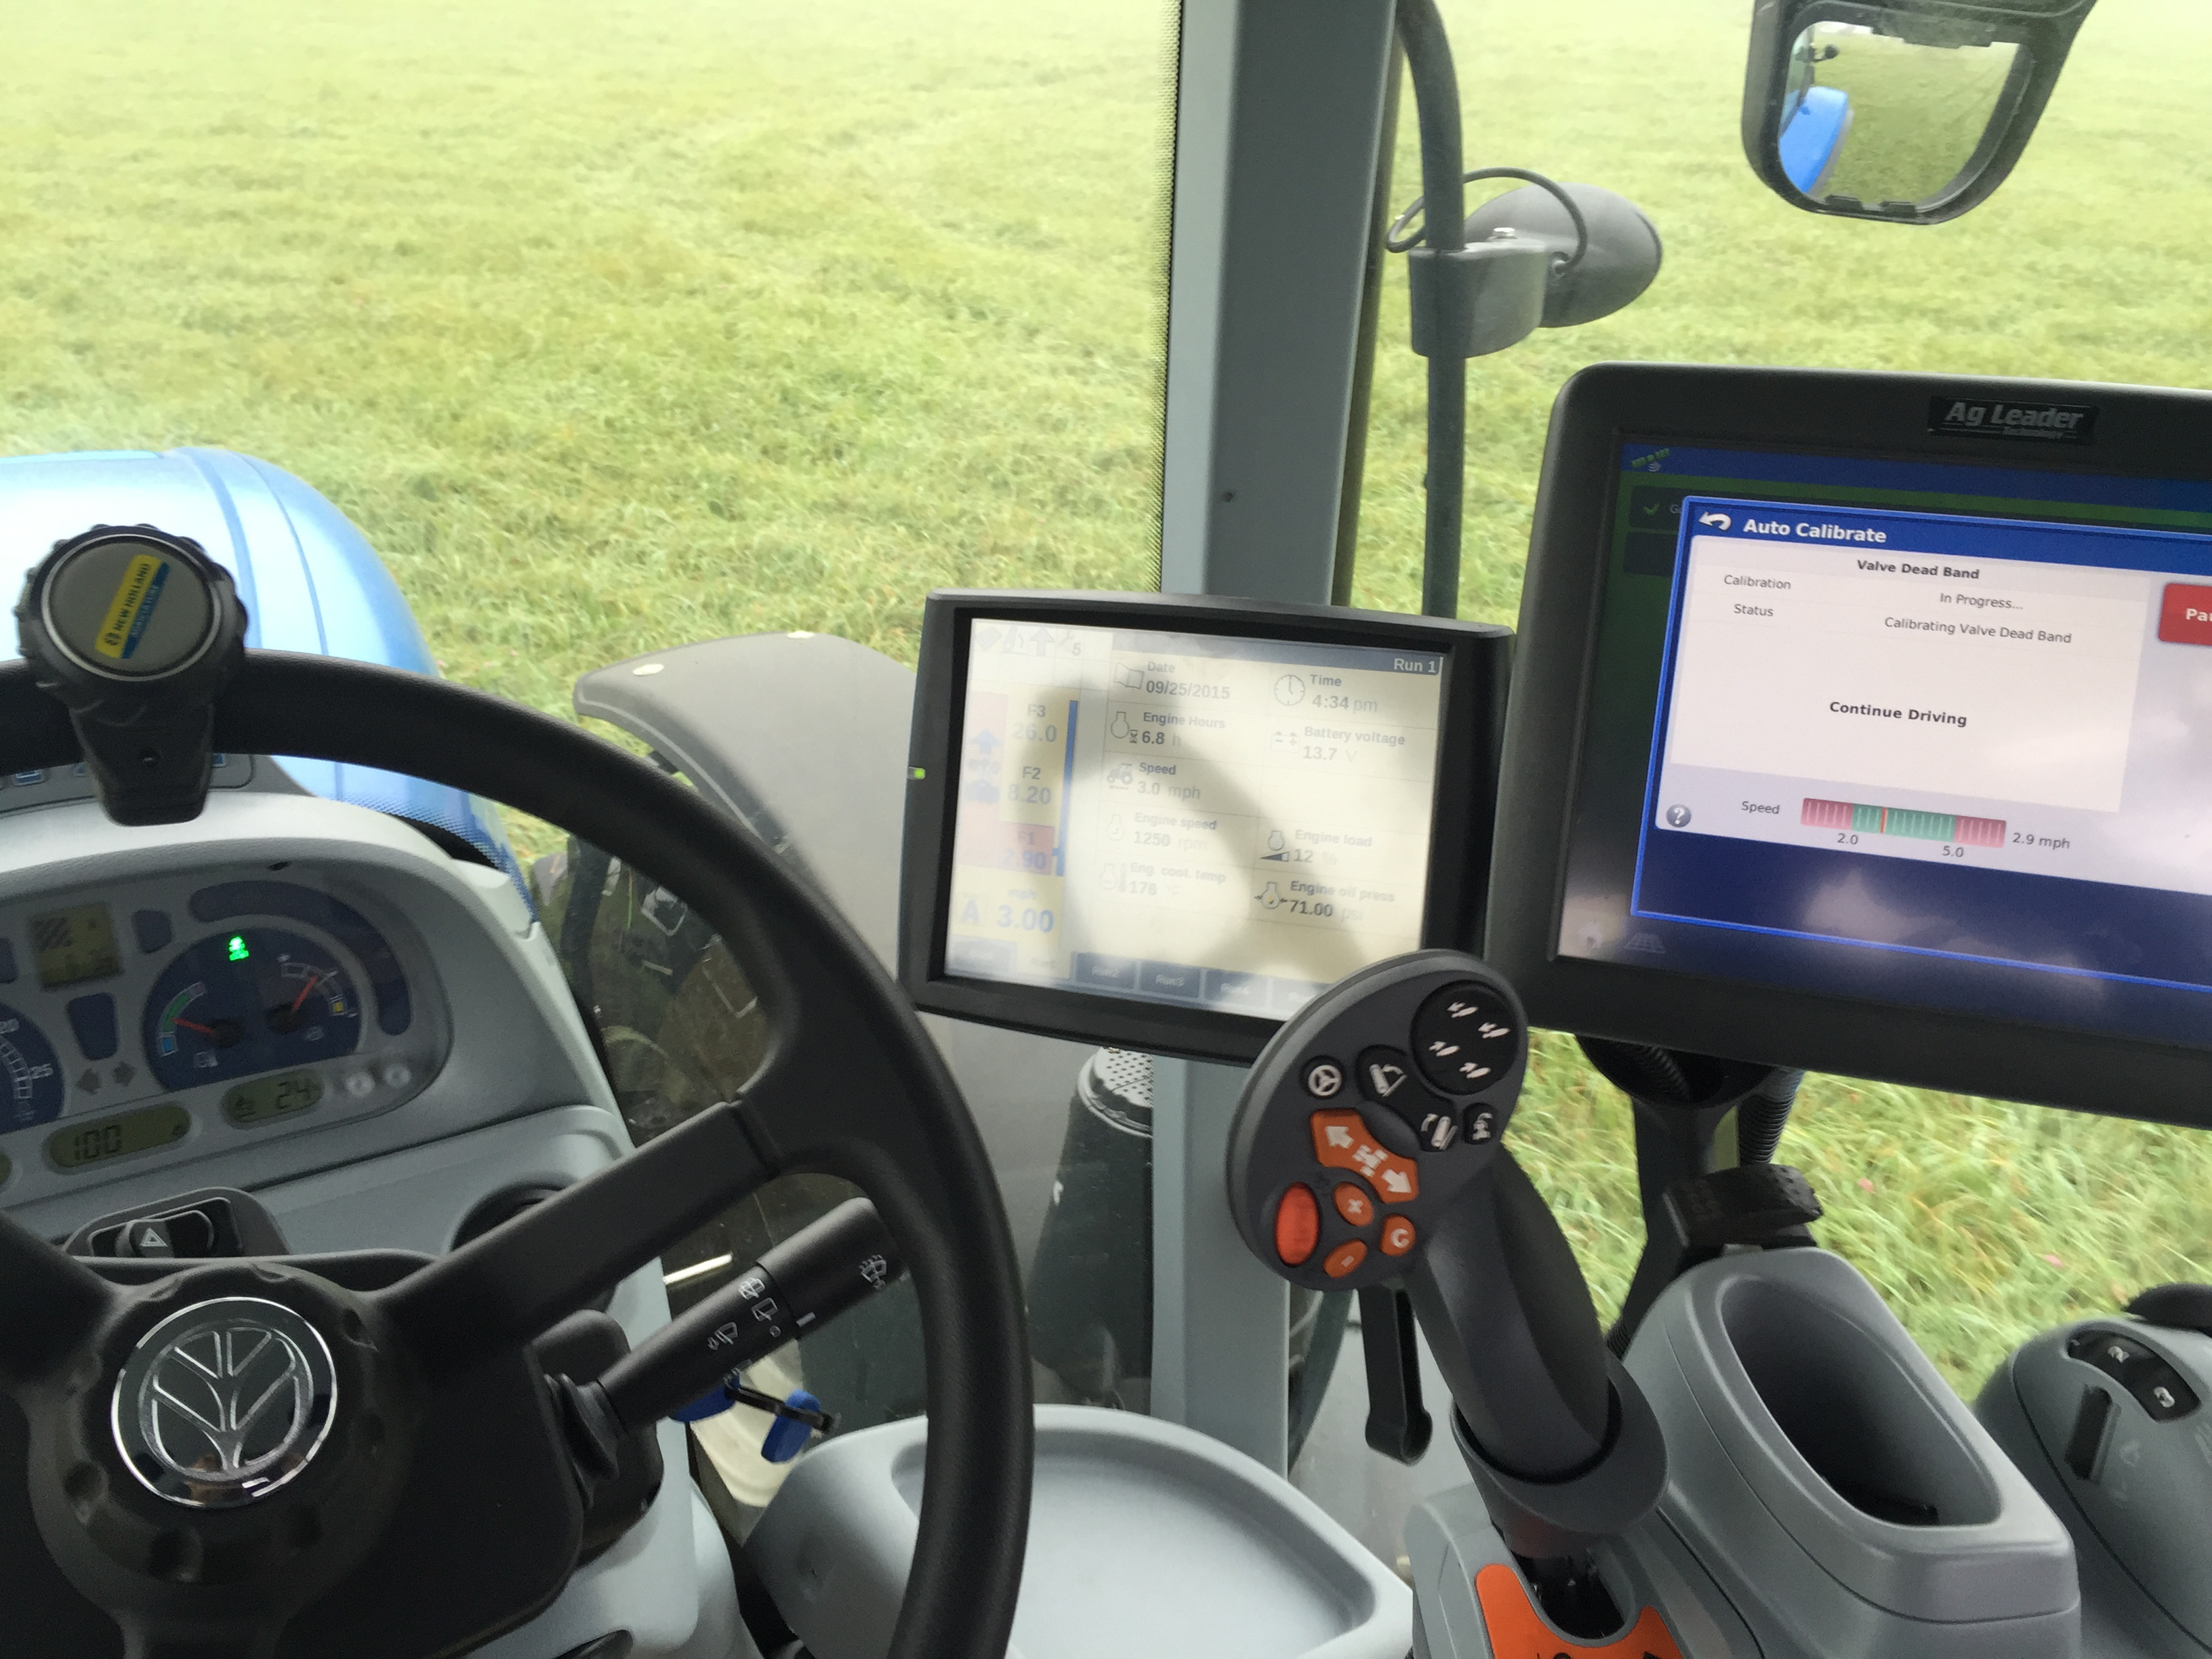 Add an auto steer system from Ag Leader can help to prevent the overlap of working during hours when visibility is low.